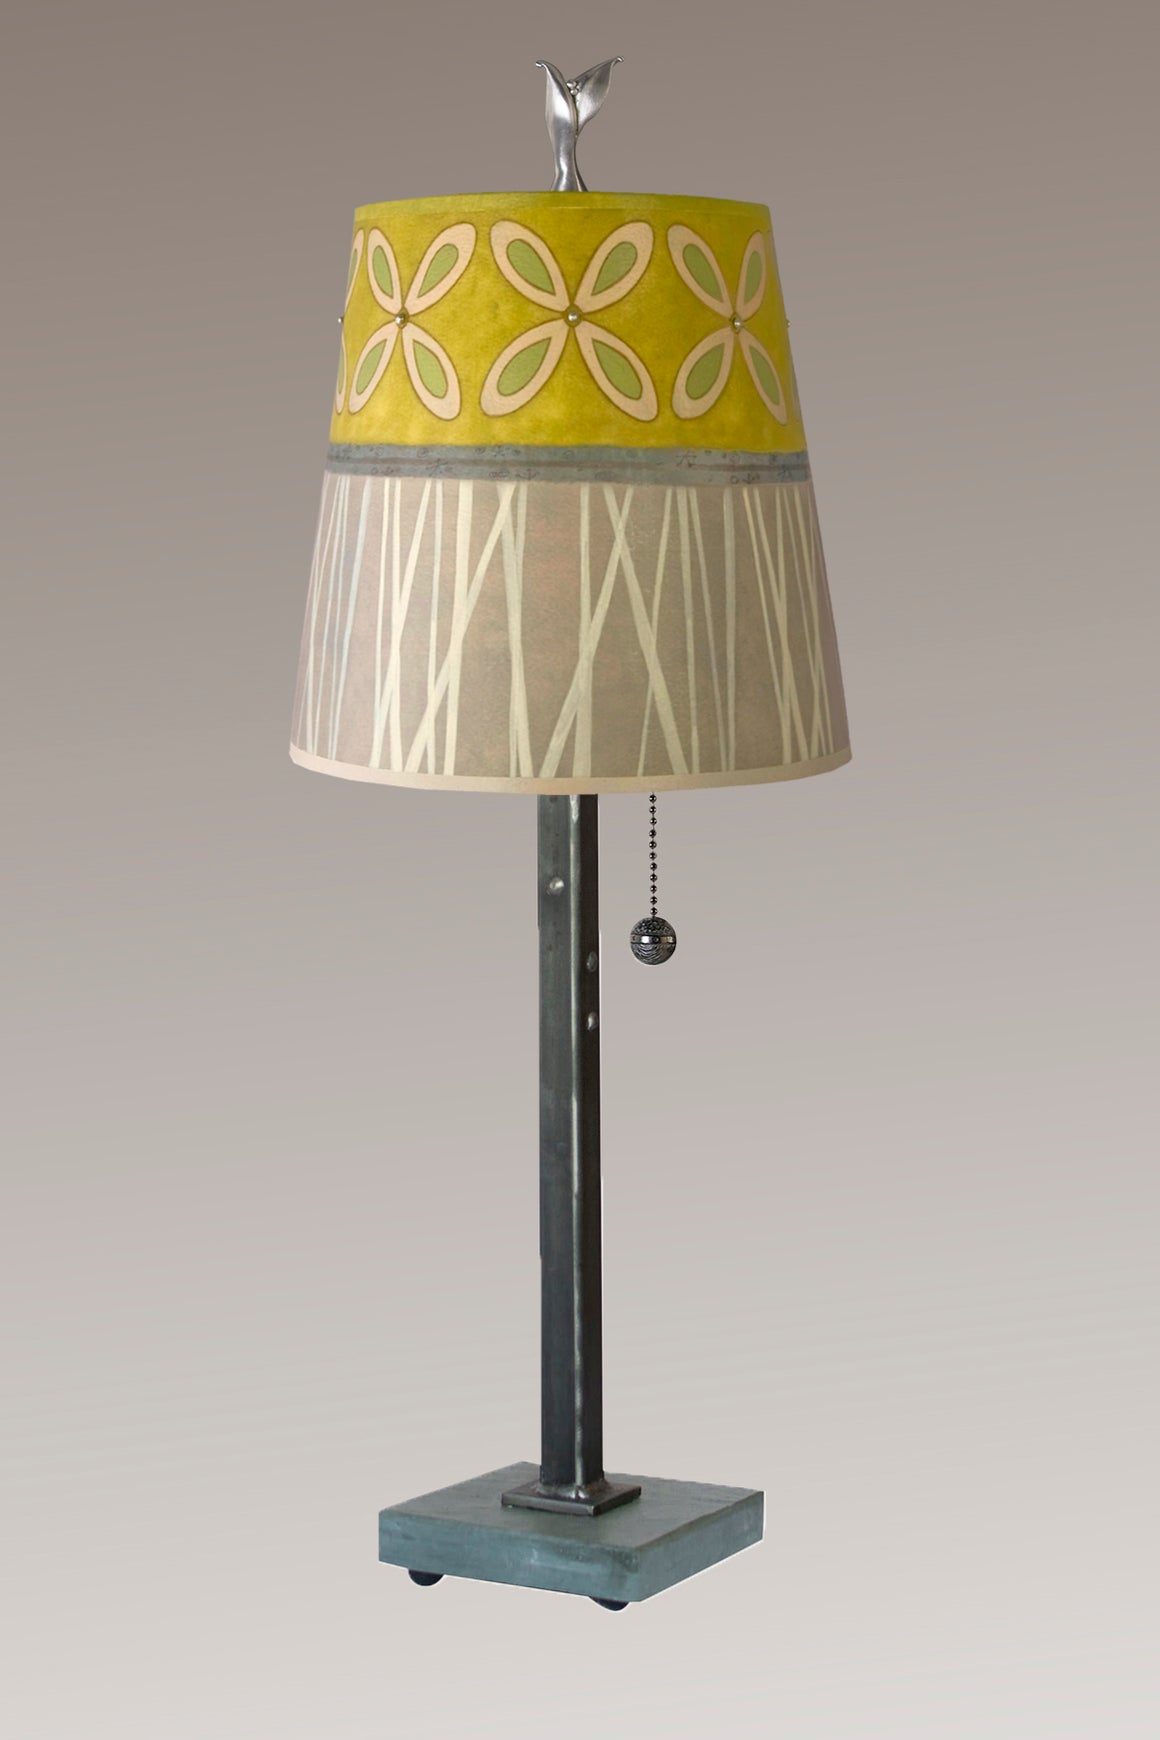 Steel Table Lamp on Vermont Slate Base with Small Drum Shade in Kiwi